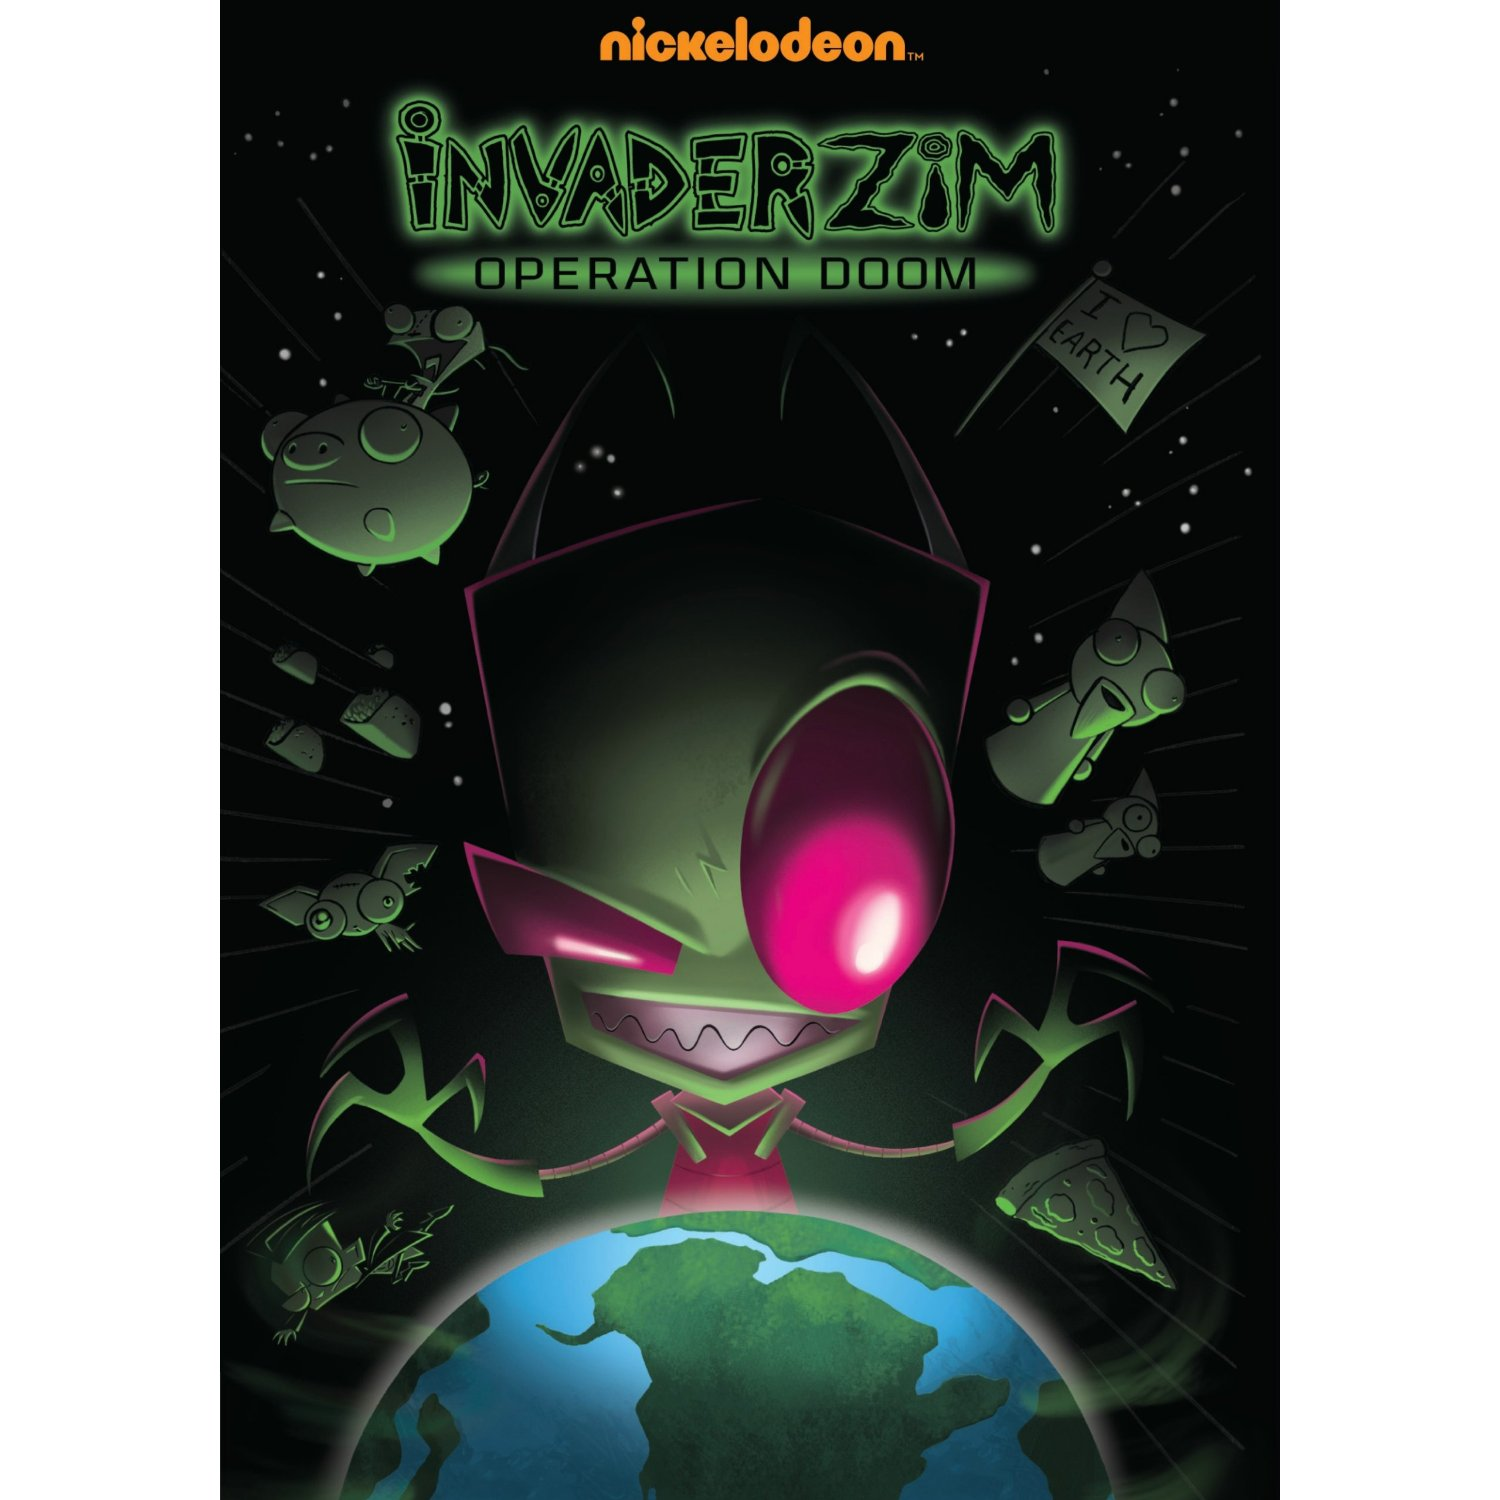 Invader Zim: Operation Doom out on DVD today – Giveaway